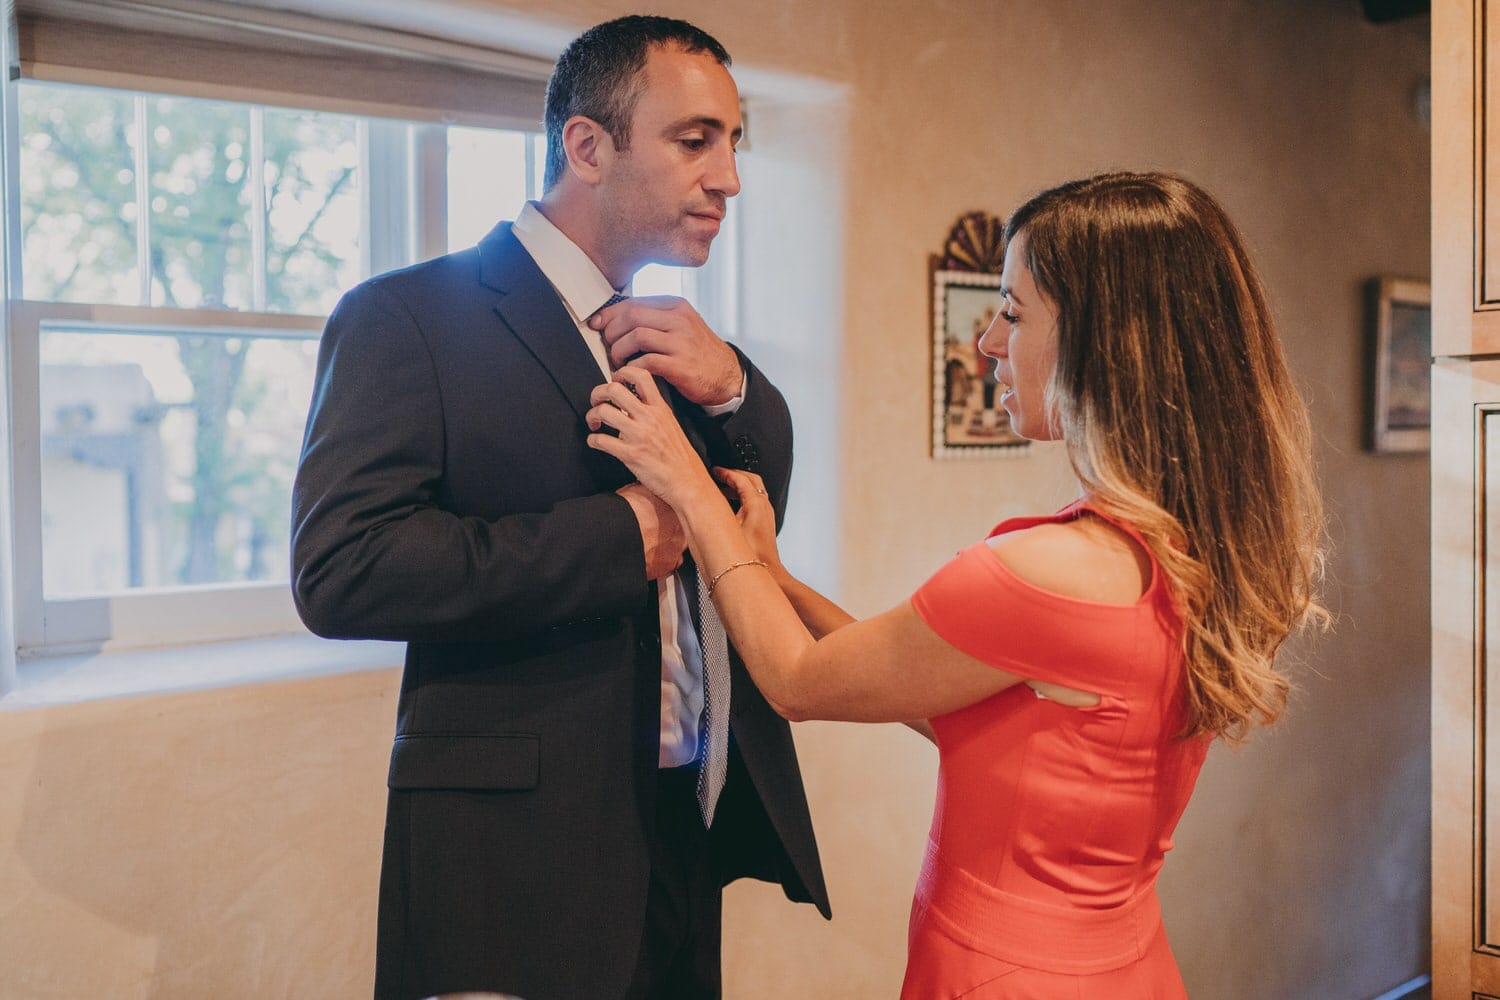 Groom's sister helping him with his tie